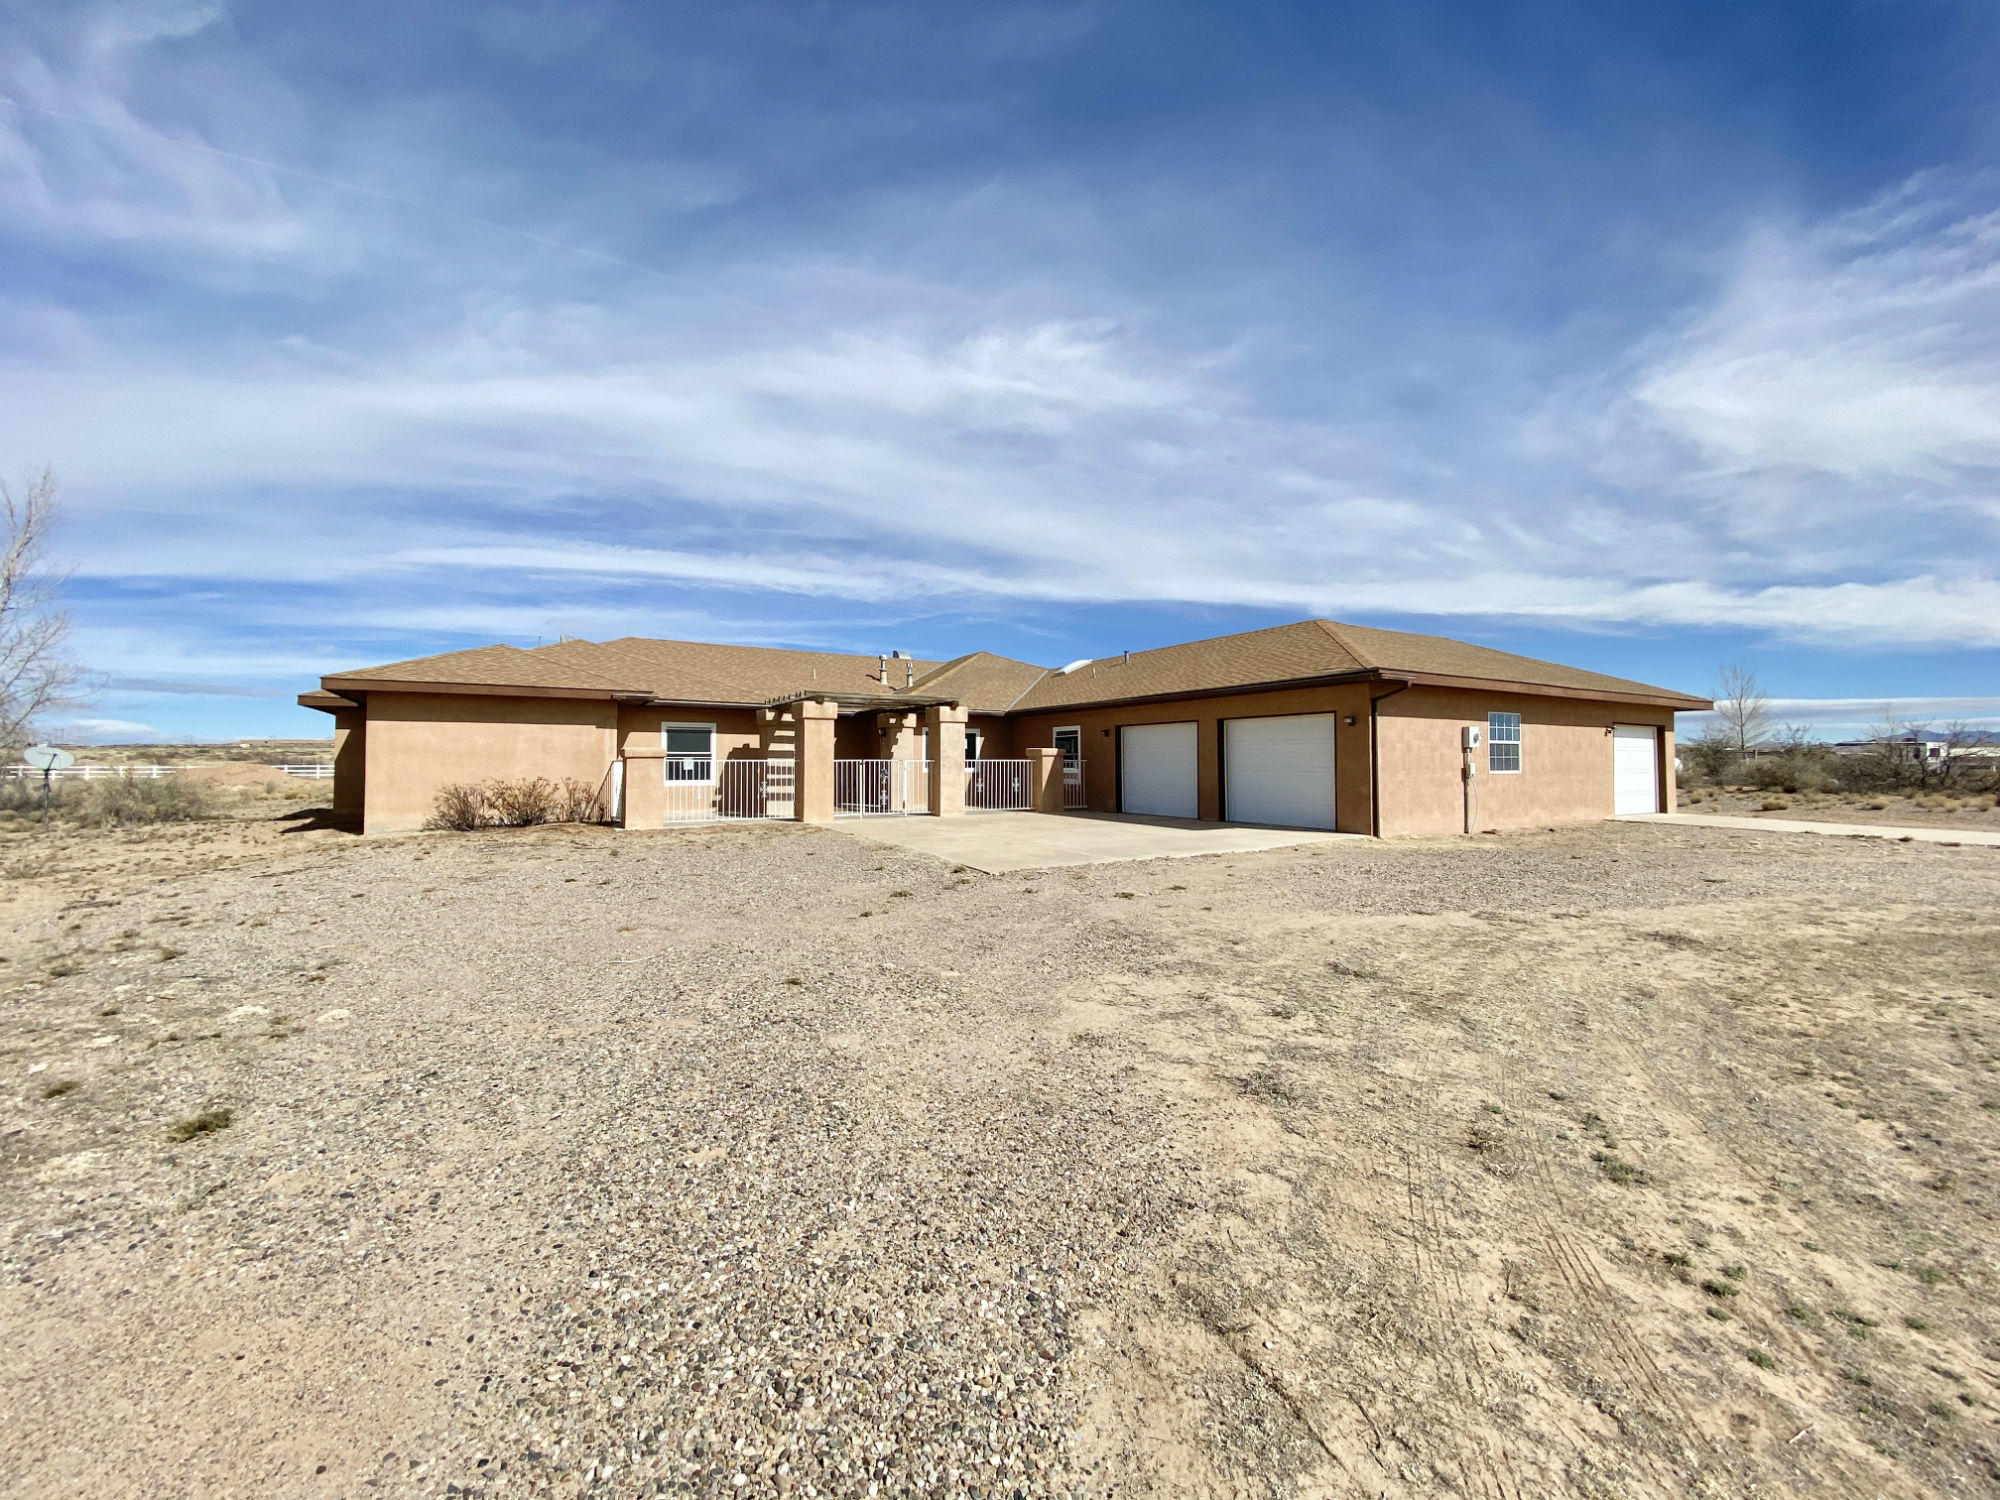 162 El Centro Drive, Bosque, NM 87006 - Bosque, NM real estate listing